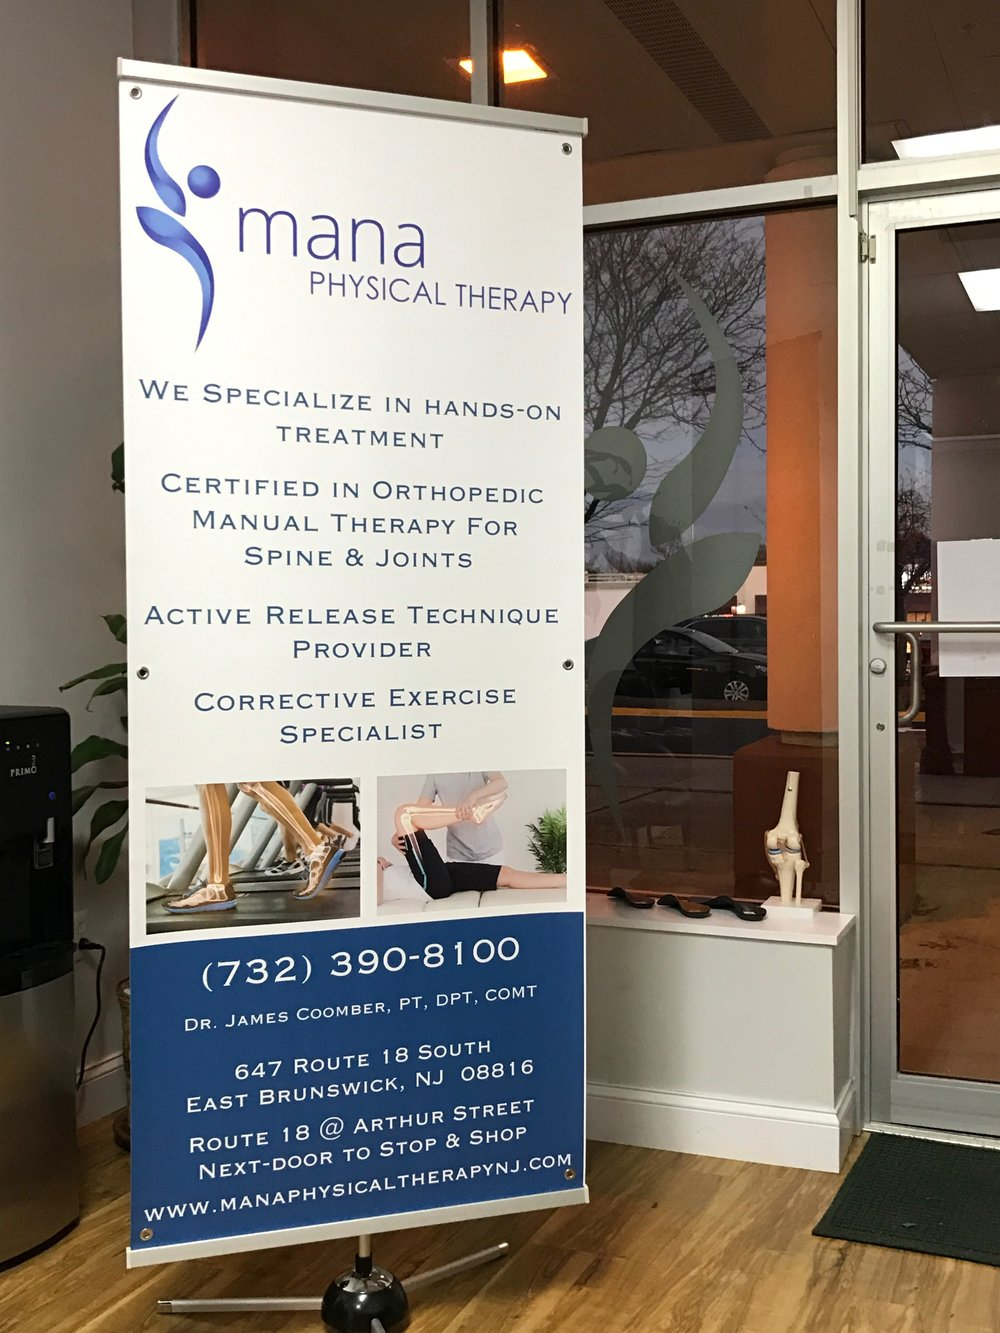 Banner time mana physical therapy at mana physical therapy we offer high end hands on physical therapy were certified in orthopedic manual therapy and active release technique and were xflitez Images